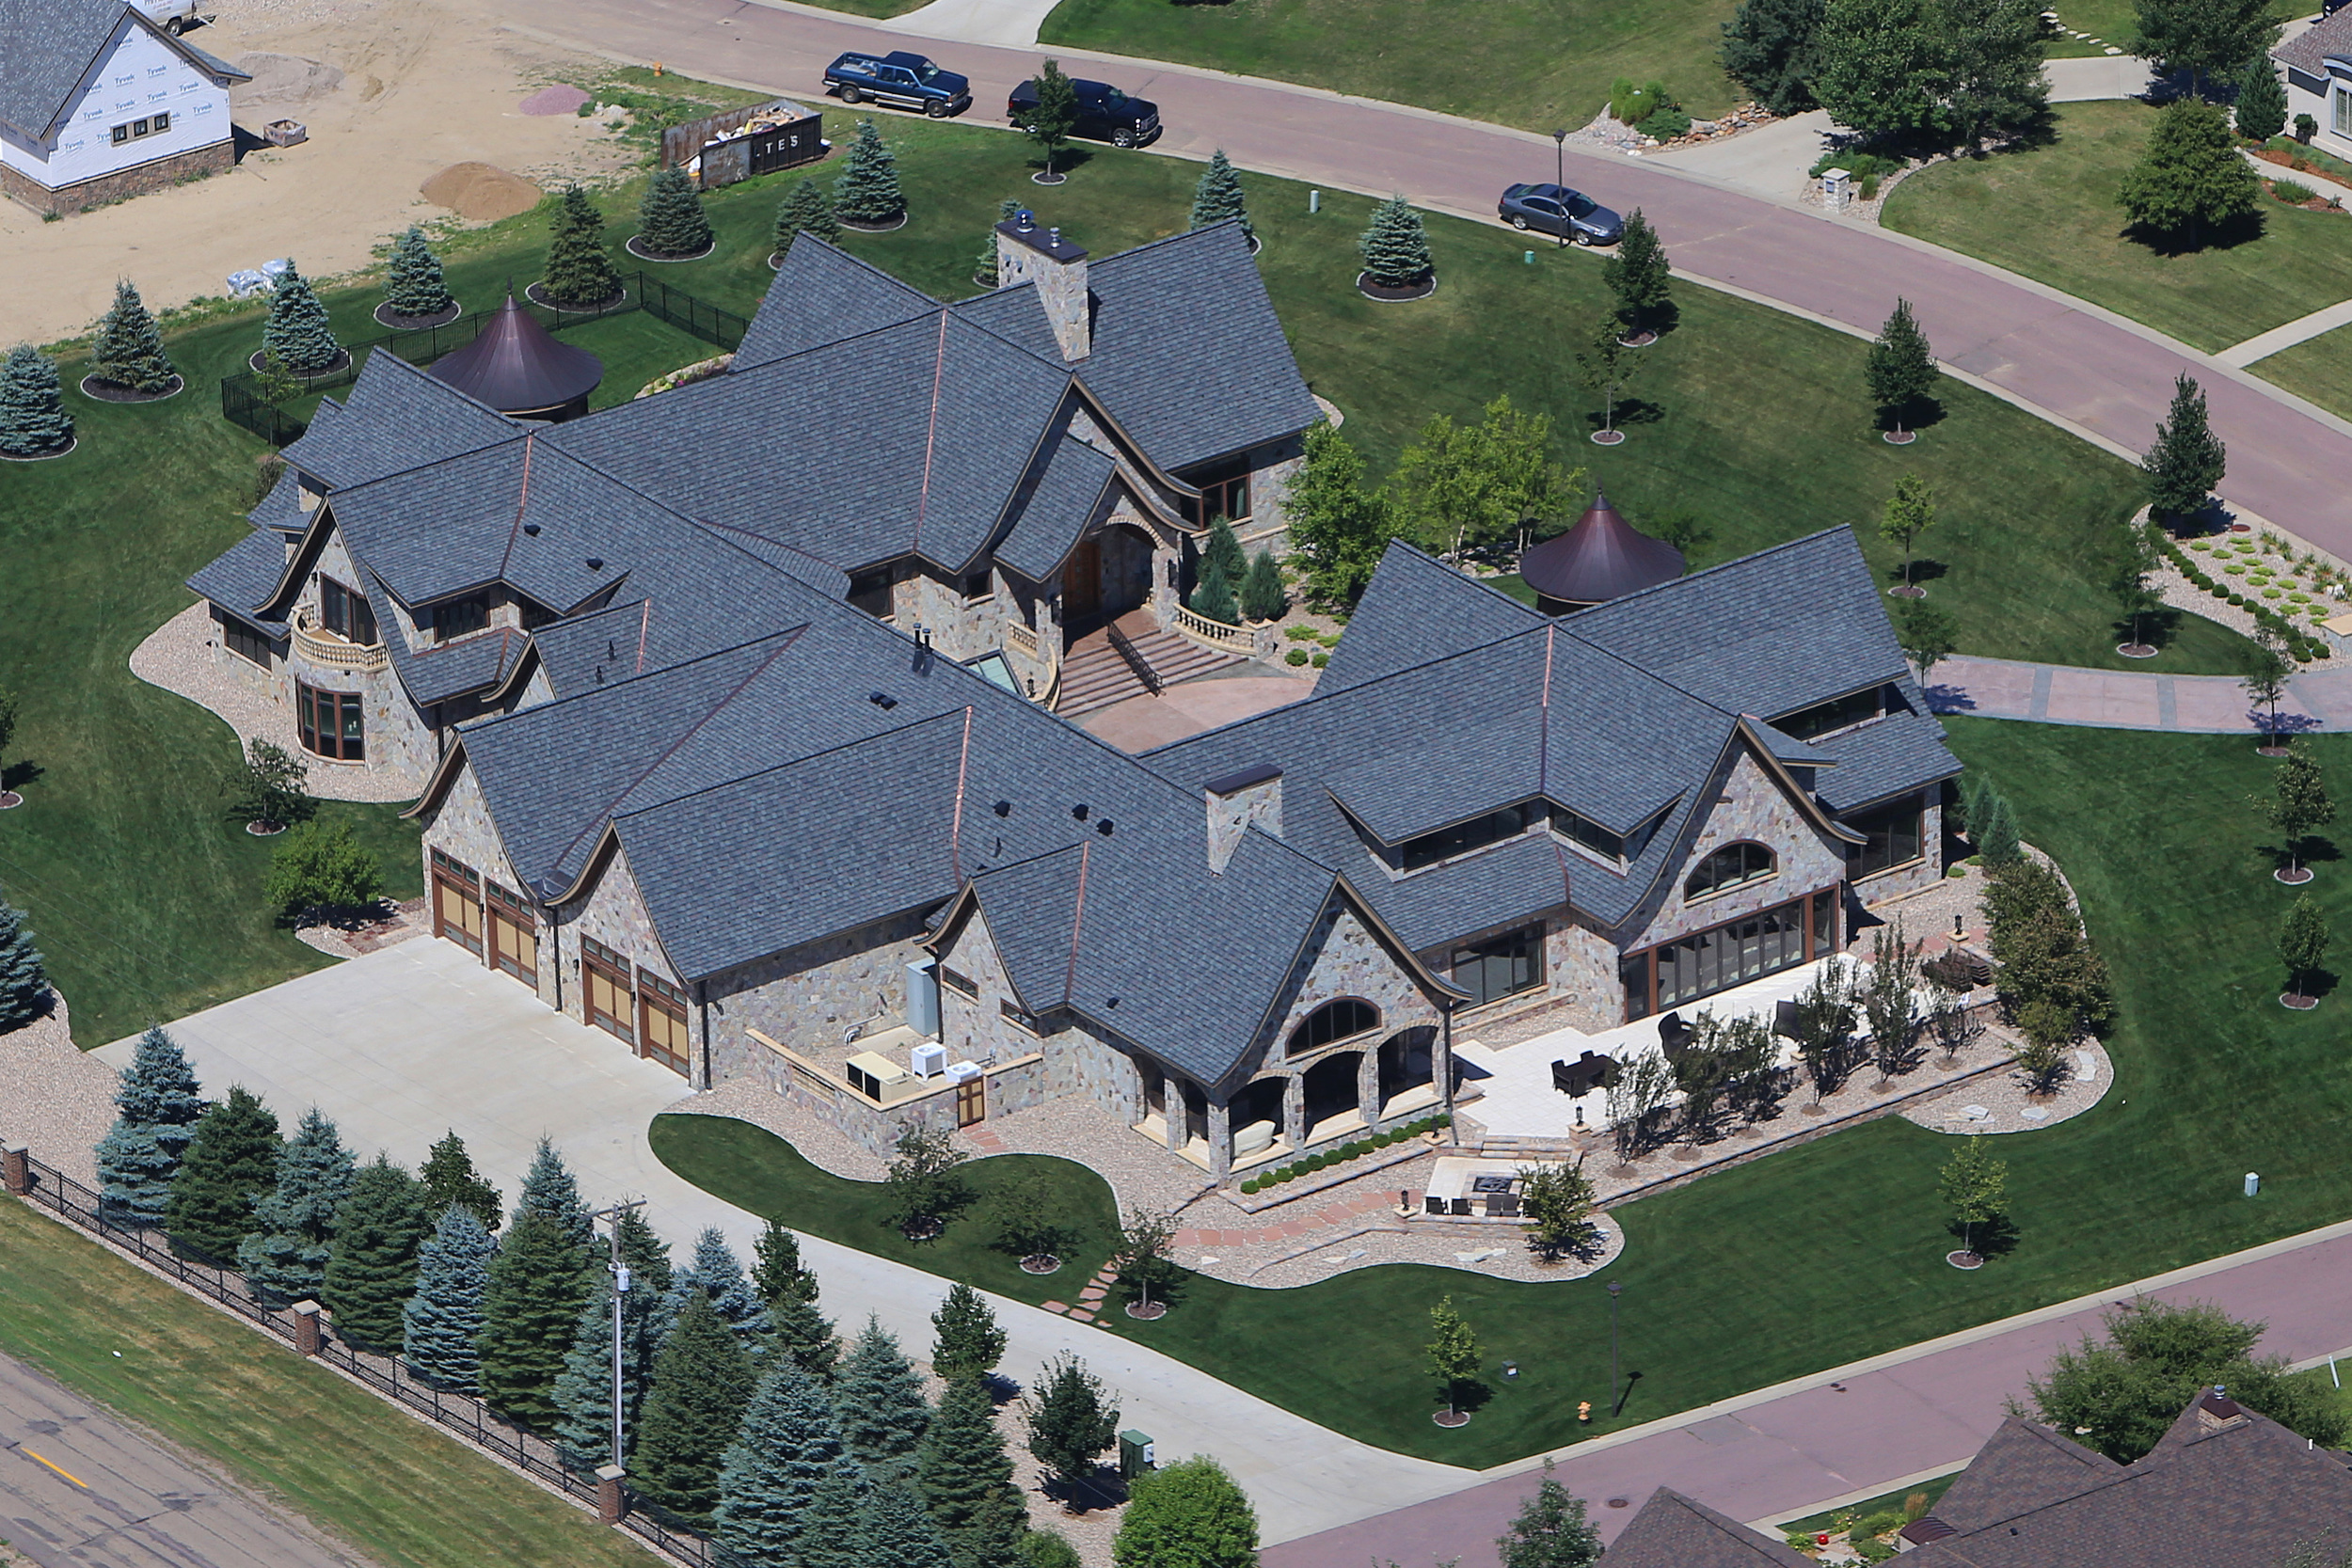 07292015IMG_5174 brad hough roofing sioux falls.jpg